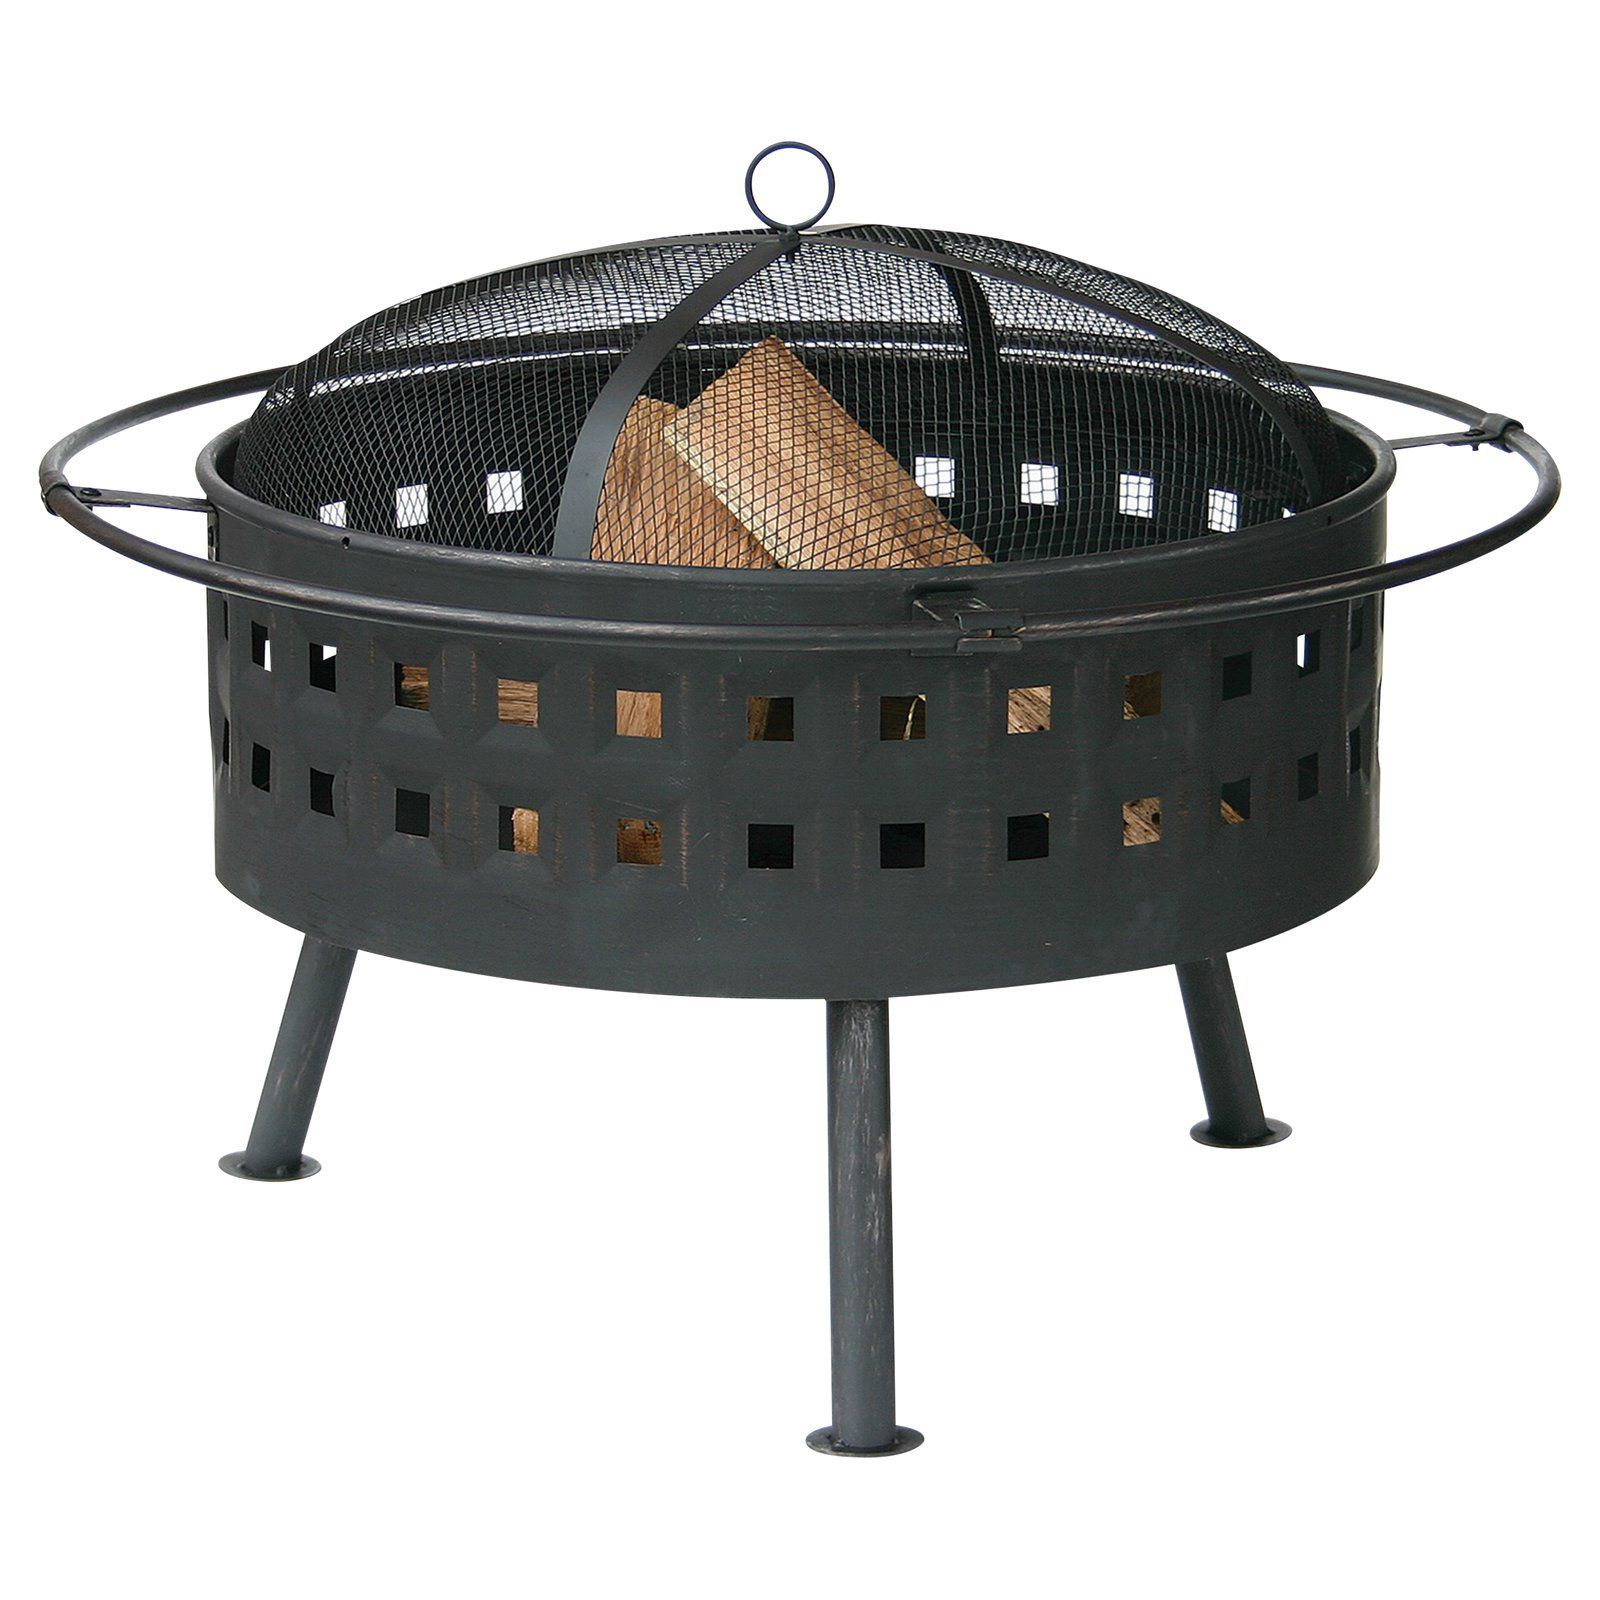 Uniflame in round wood burning fire bowl with lattice design